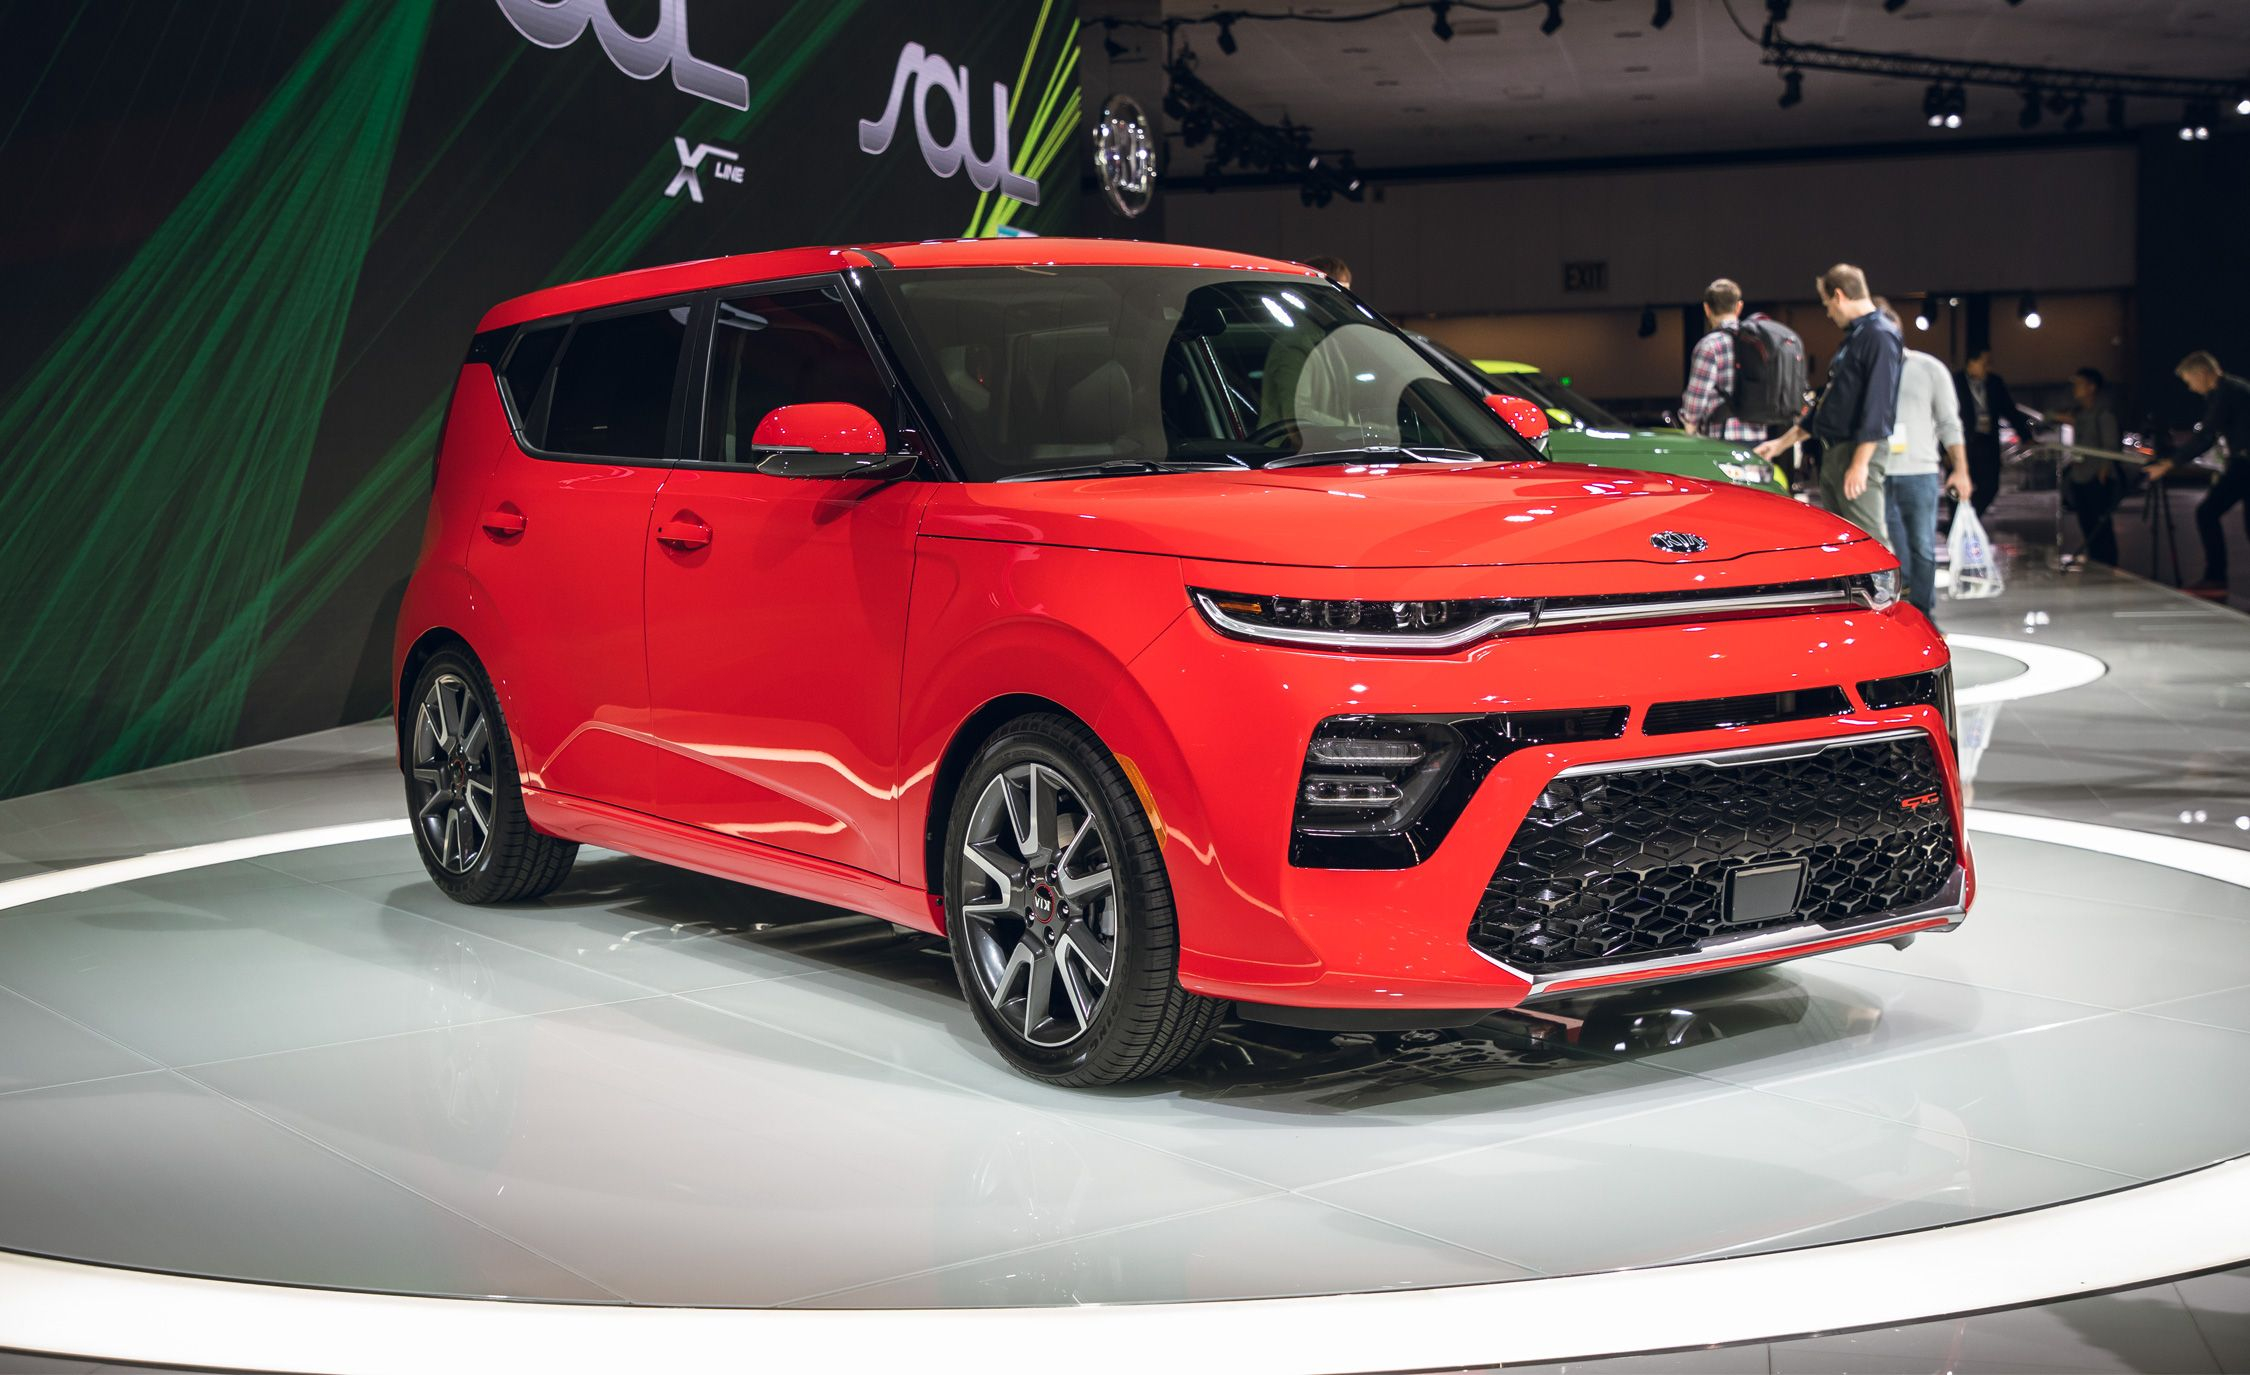 2020 Kia Soul Crossover - Details, Specs, And Release Date regarding 2021 Kia Soul Gt Interior Concept, Specification